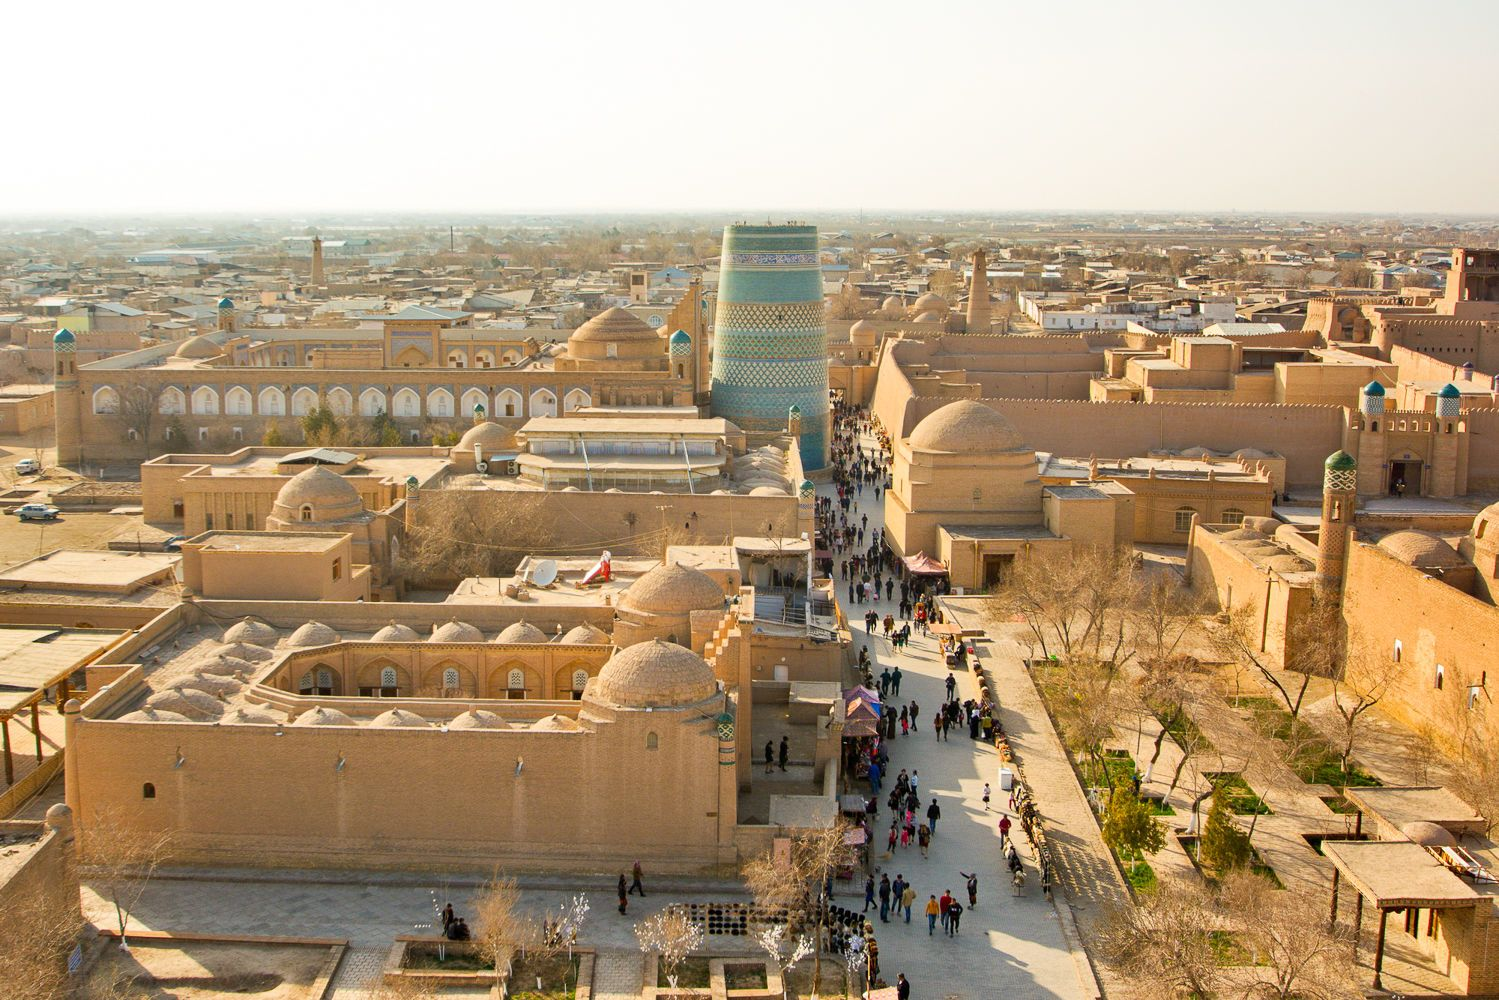 Overview of the itchan Kala or inner part of the city in Khiva, Uzbekistan Travel